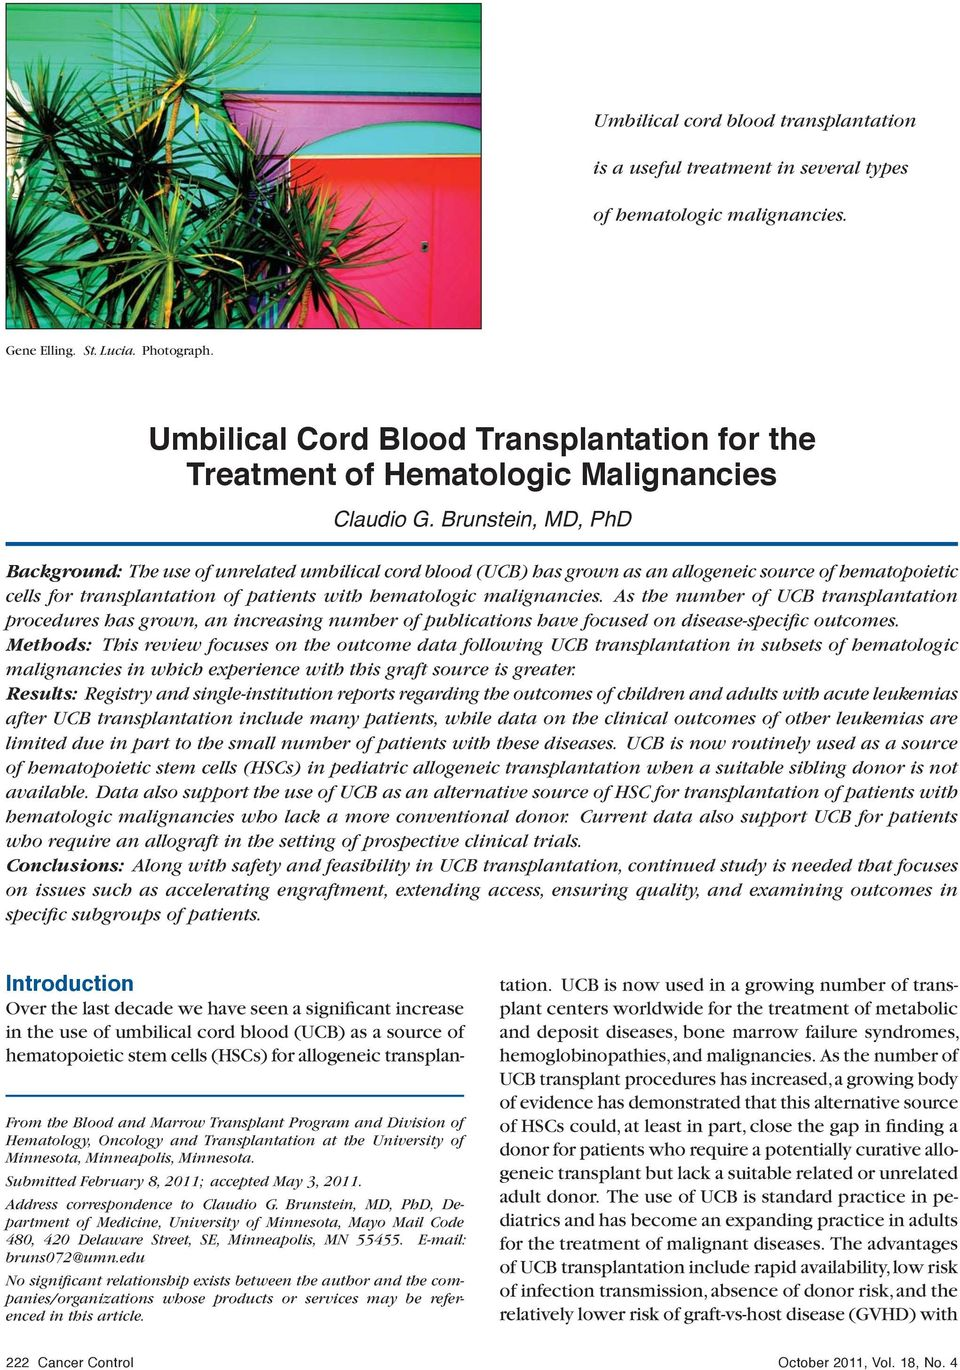 Brunstein, MD, PhD Background: The use of unrelated umbilical cord blood (UCB) has grown as an allogeneic source of hematopoietic cells for transplantation of patients with hematologic malignancies.